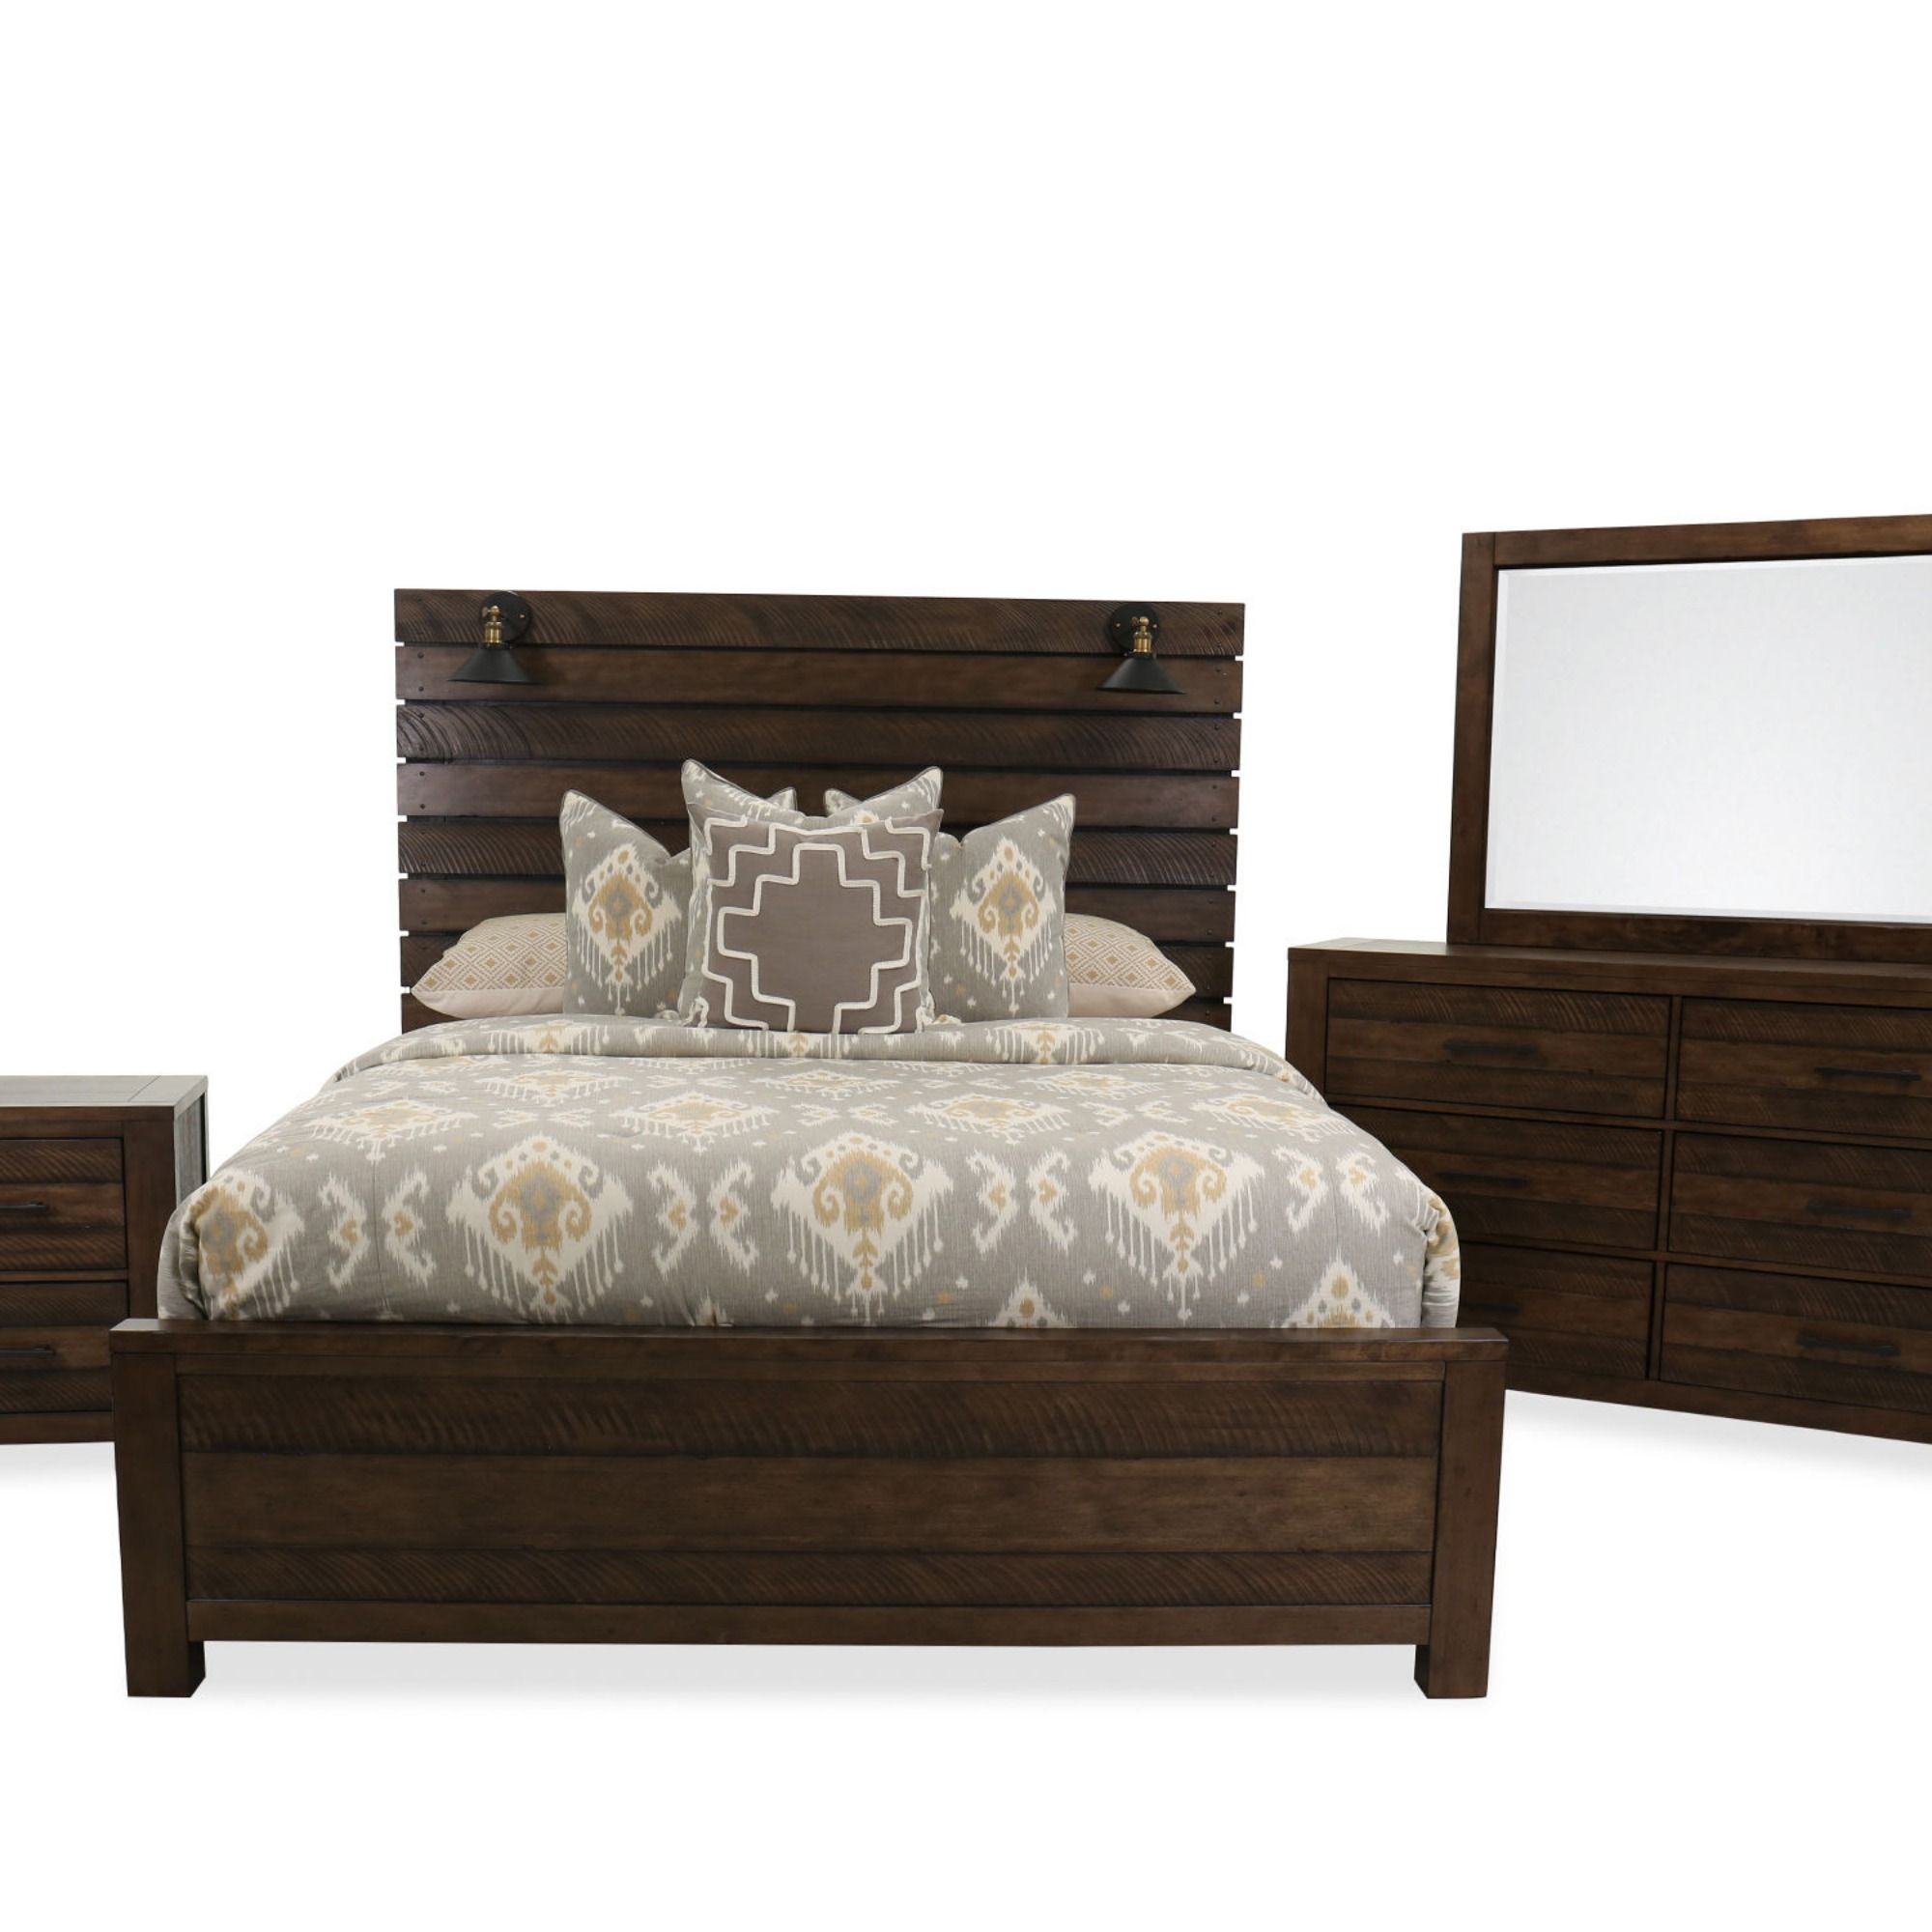 Beds I like from Mathis Brothers! Home decor, Bed, Furniture